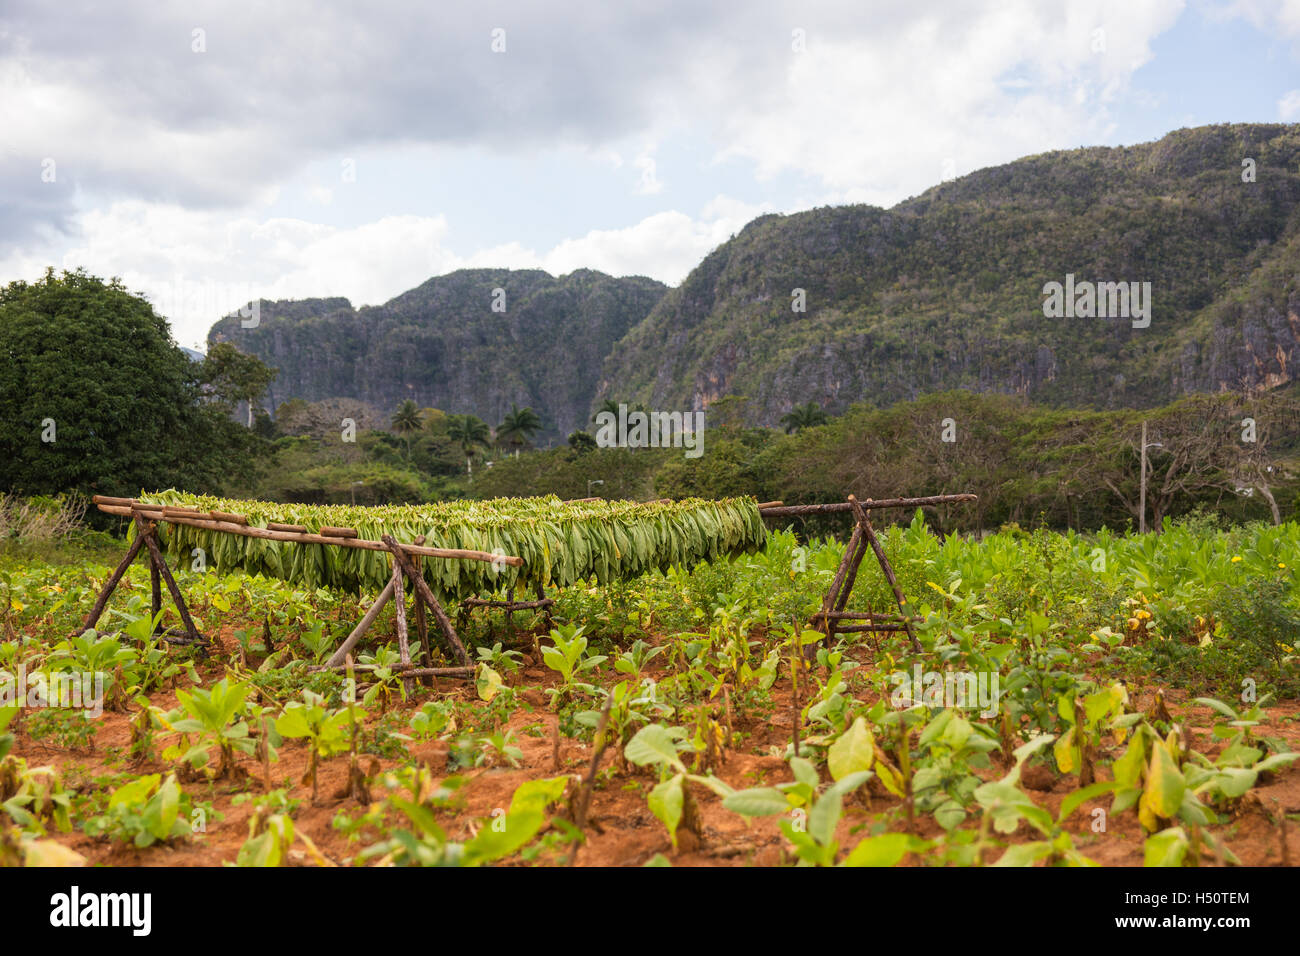 tobacco leaves drying in the fields outside Vinales - Stock Image